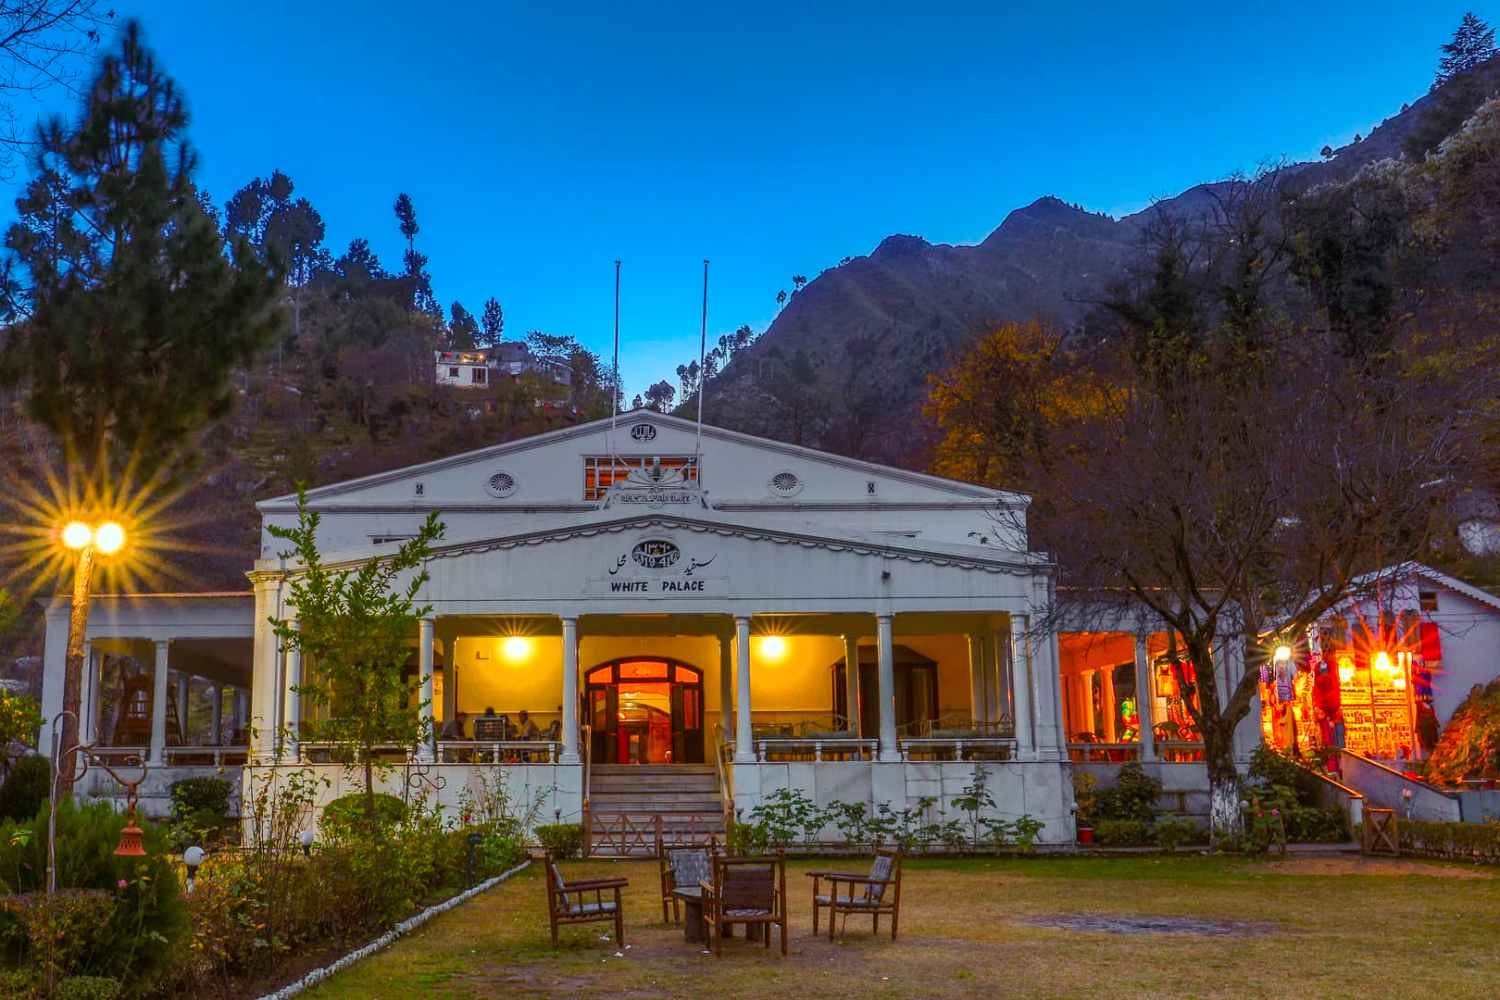 The White Palace in Swat Valley